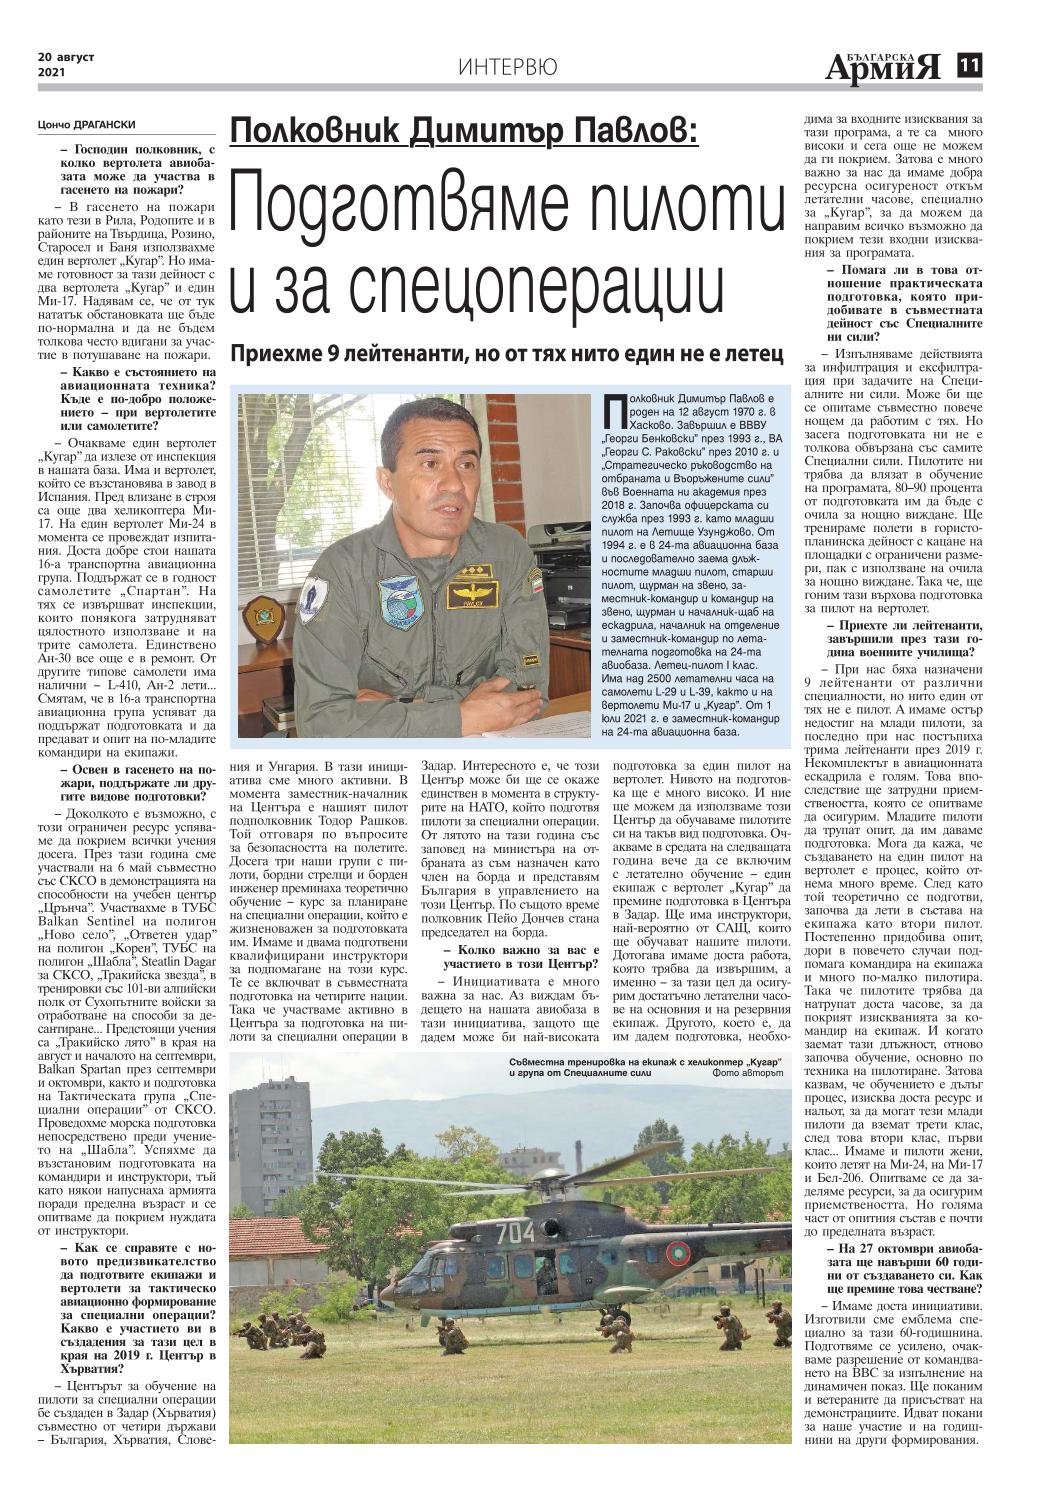 https://armymedia.bg/wp-content/uploads/2021/08/11.page1_-2.jpg